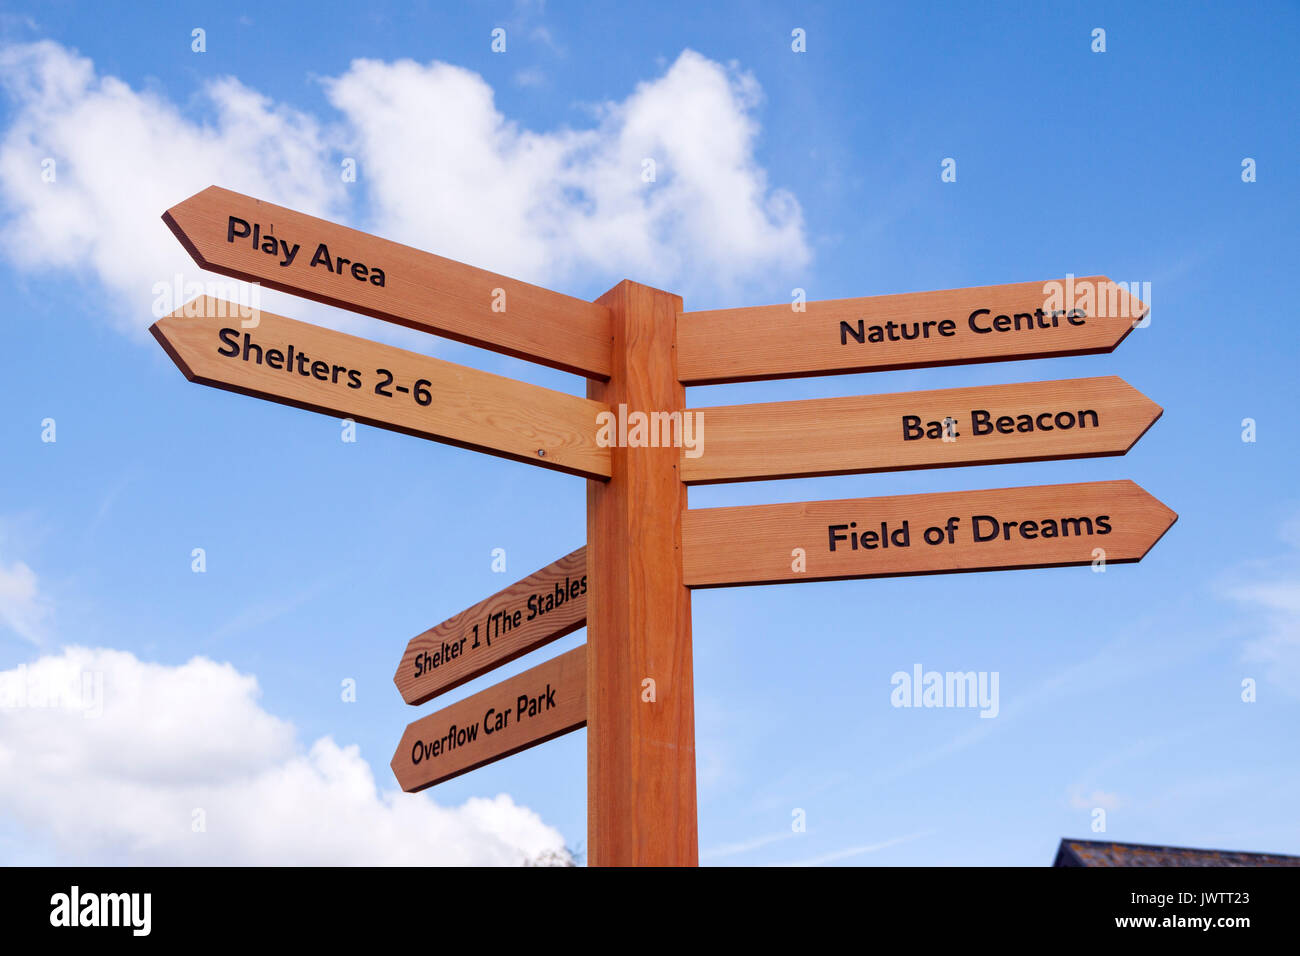 Signpost at Sidmouth donkey sanctuary, play area,stables,shelters,bat beacon,field of dreams,nature centre, - Stock Image